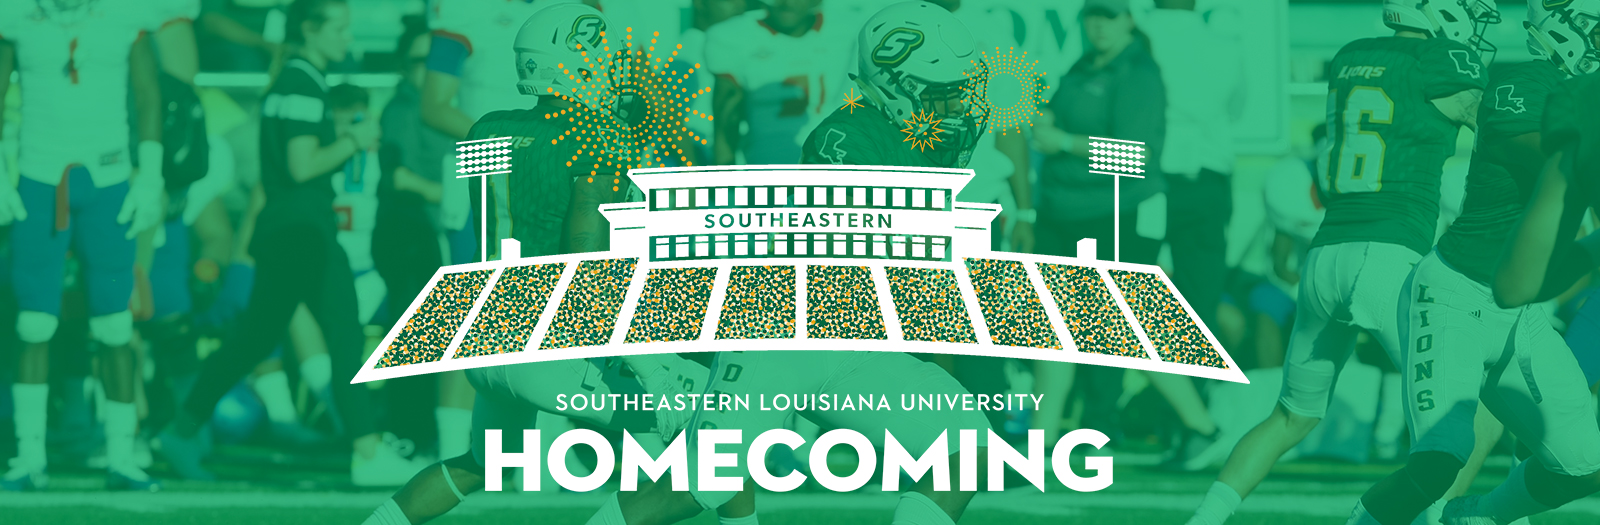 Homecoming 2019 Logo and Football Players